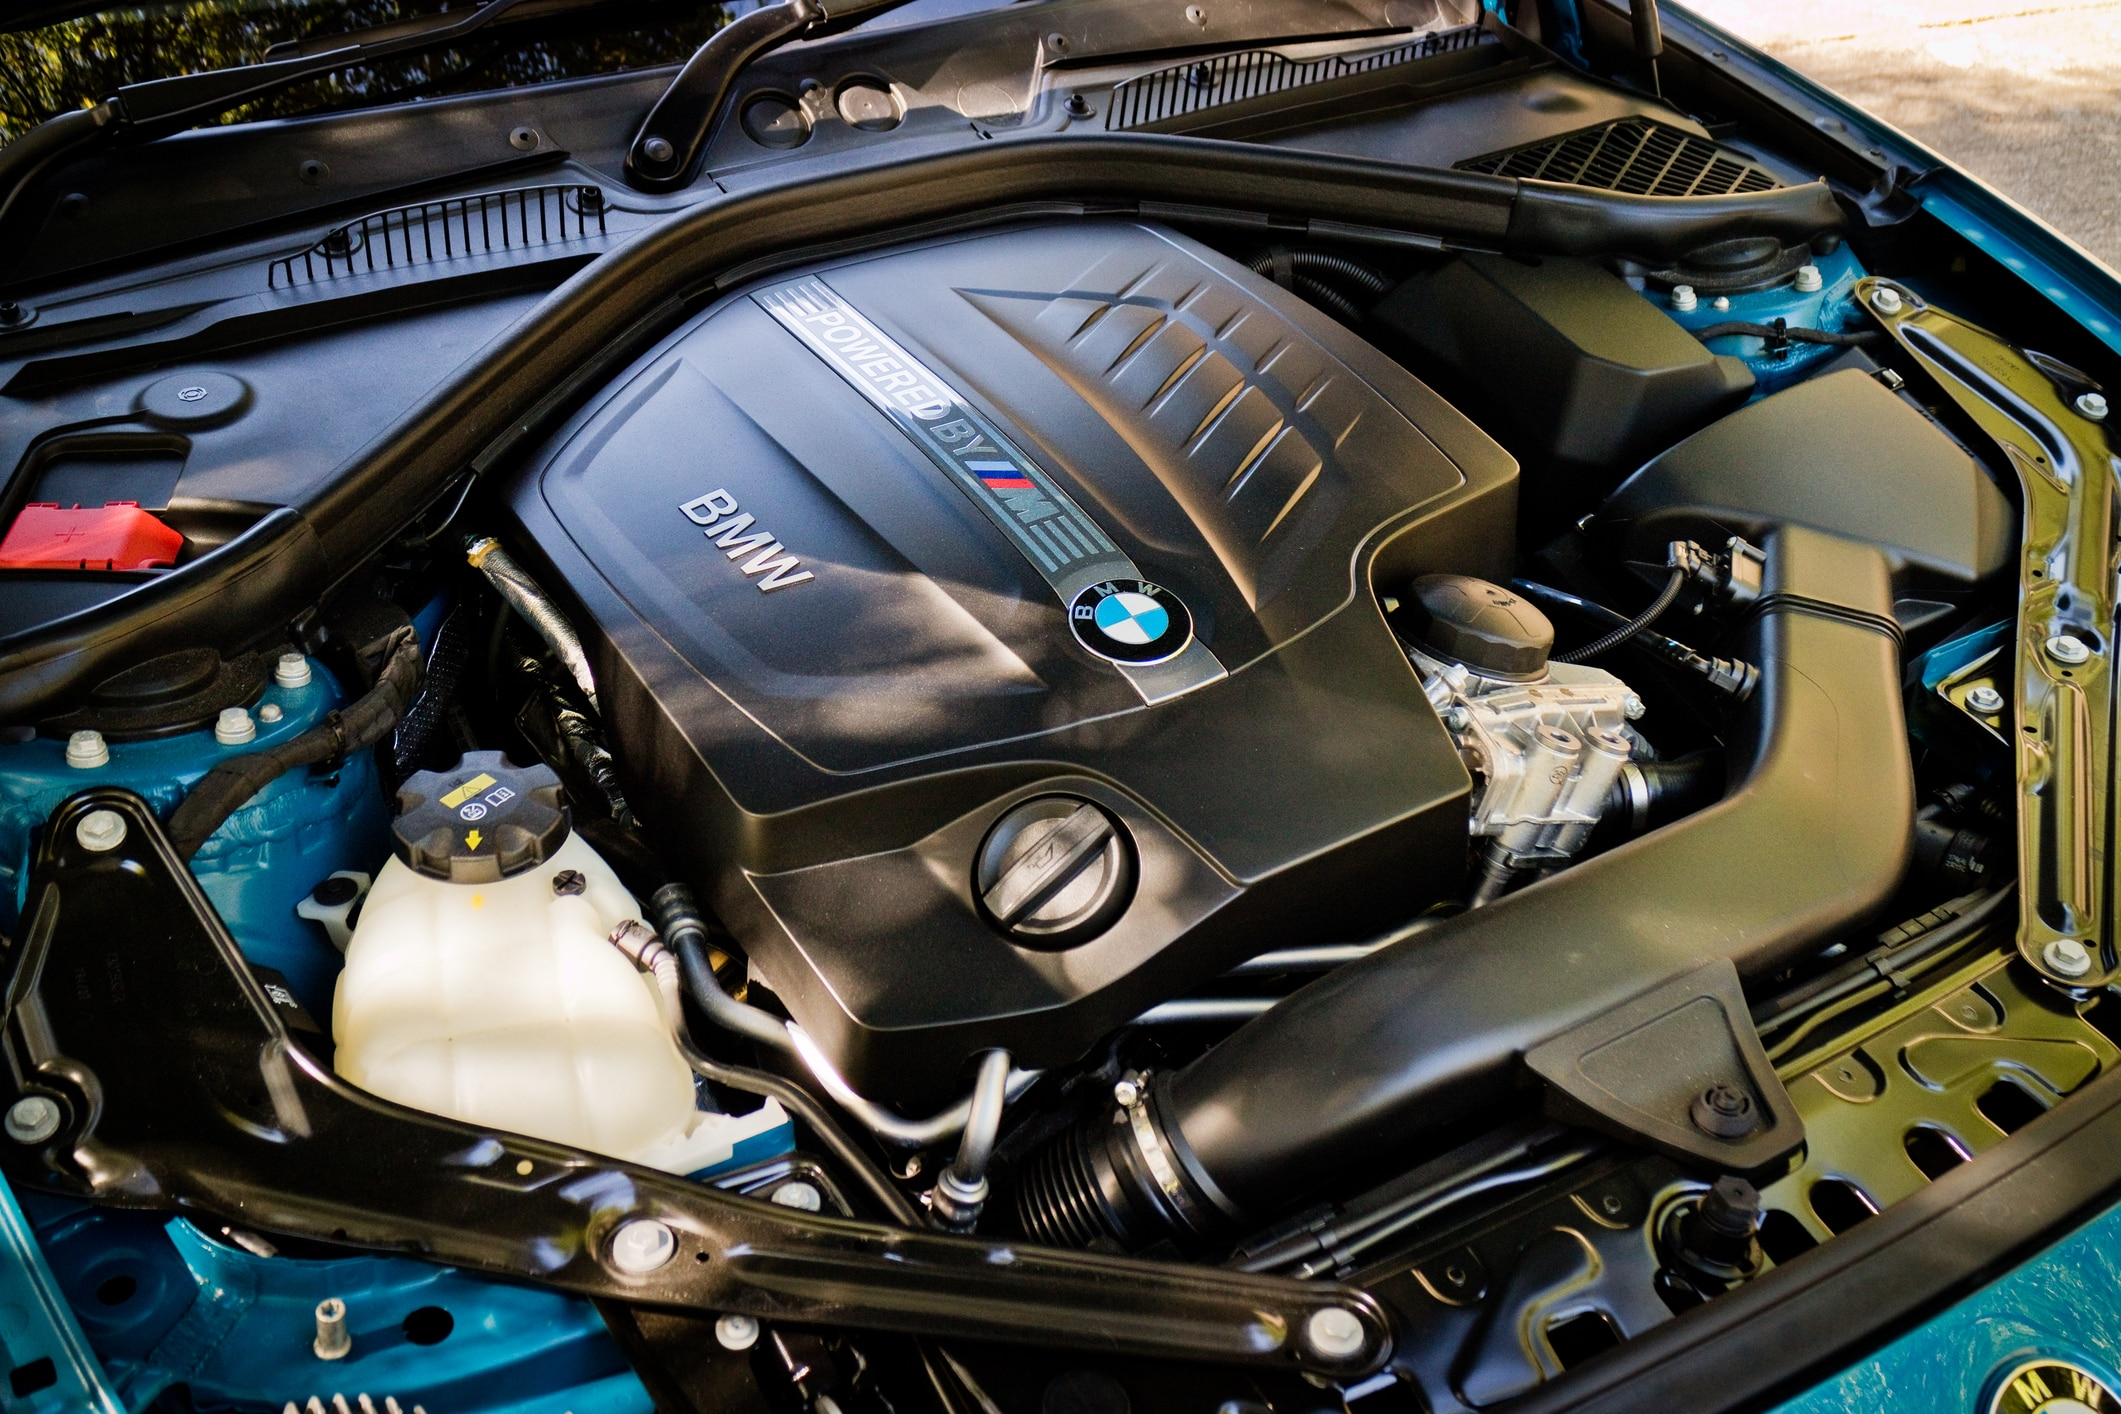 Our BMW Service – Simply the Best